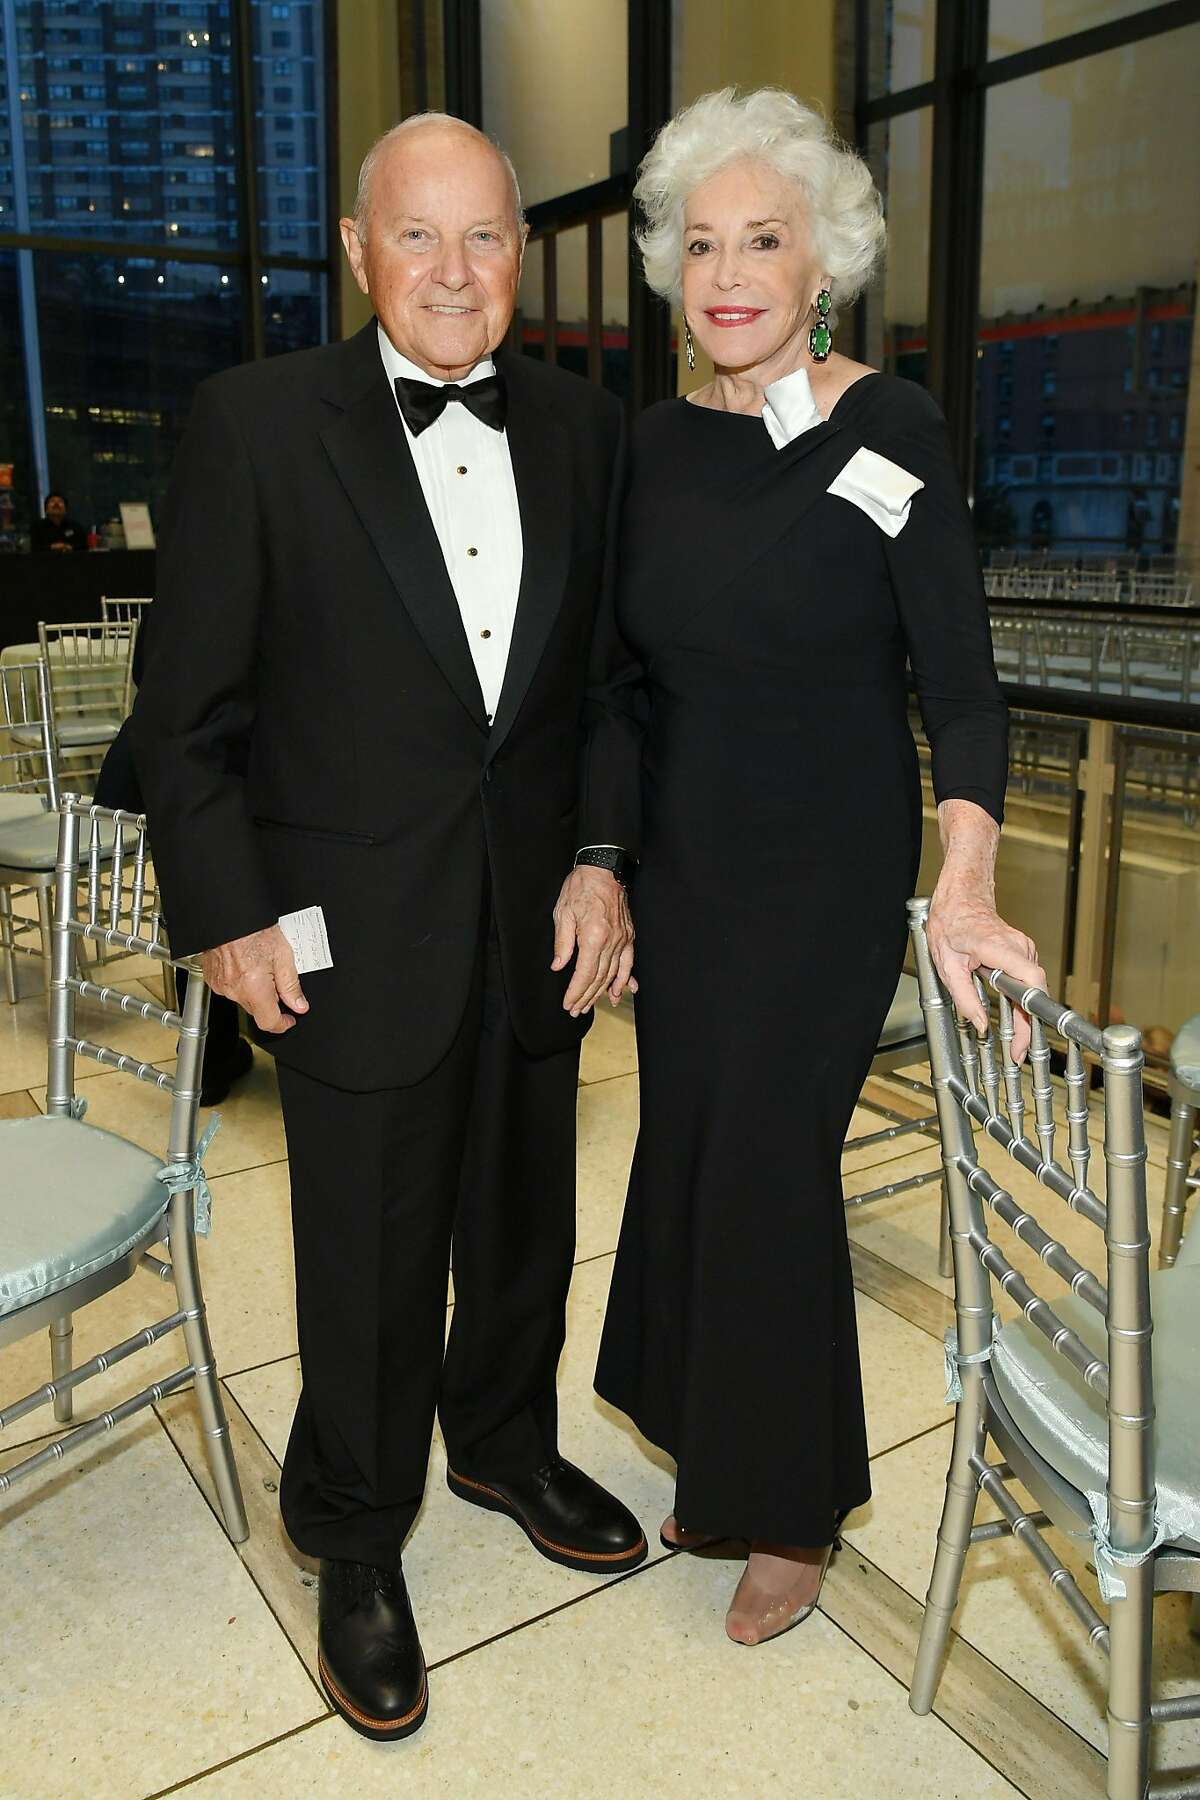 NEW YORK, NY - SEPTEMBER 20: Charles Johnson and Ann Johnson attend the New York Philharmonic's Opening Gala: New York, Meet Jaap at David Geffen Hall on September 20, 2018 in New York City. (Photo by Mike Coppola/Getty Images for the New York Philharmonic)